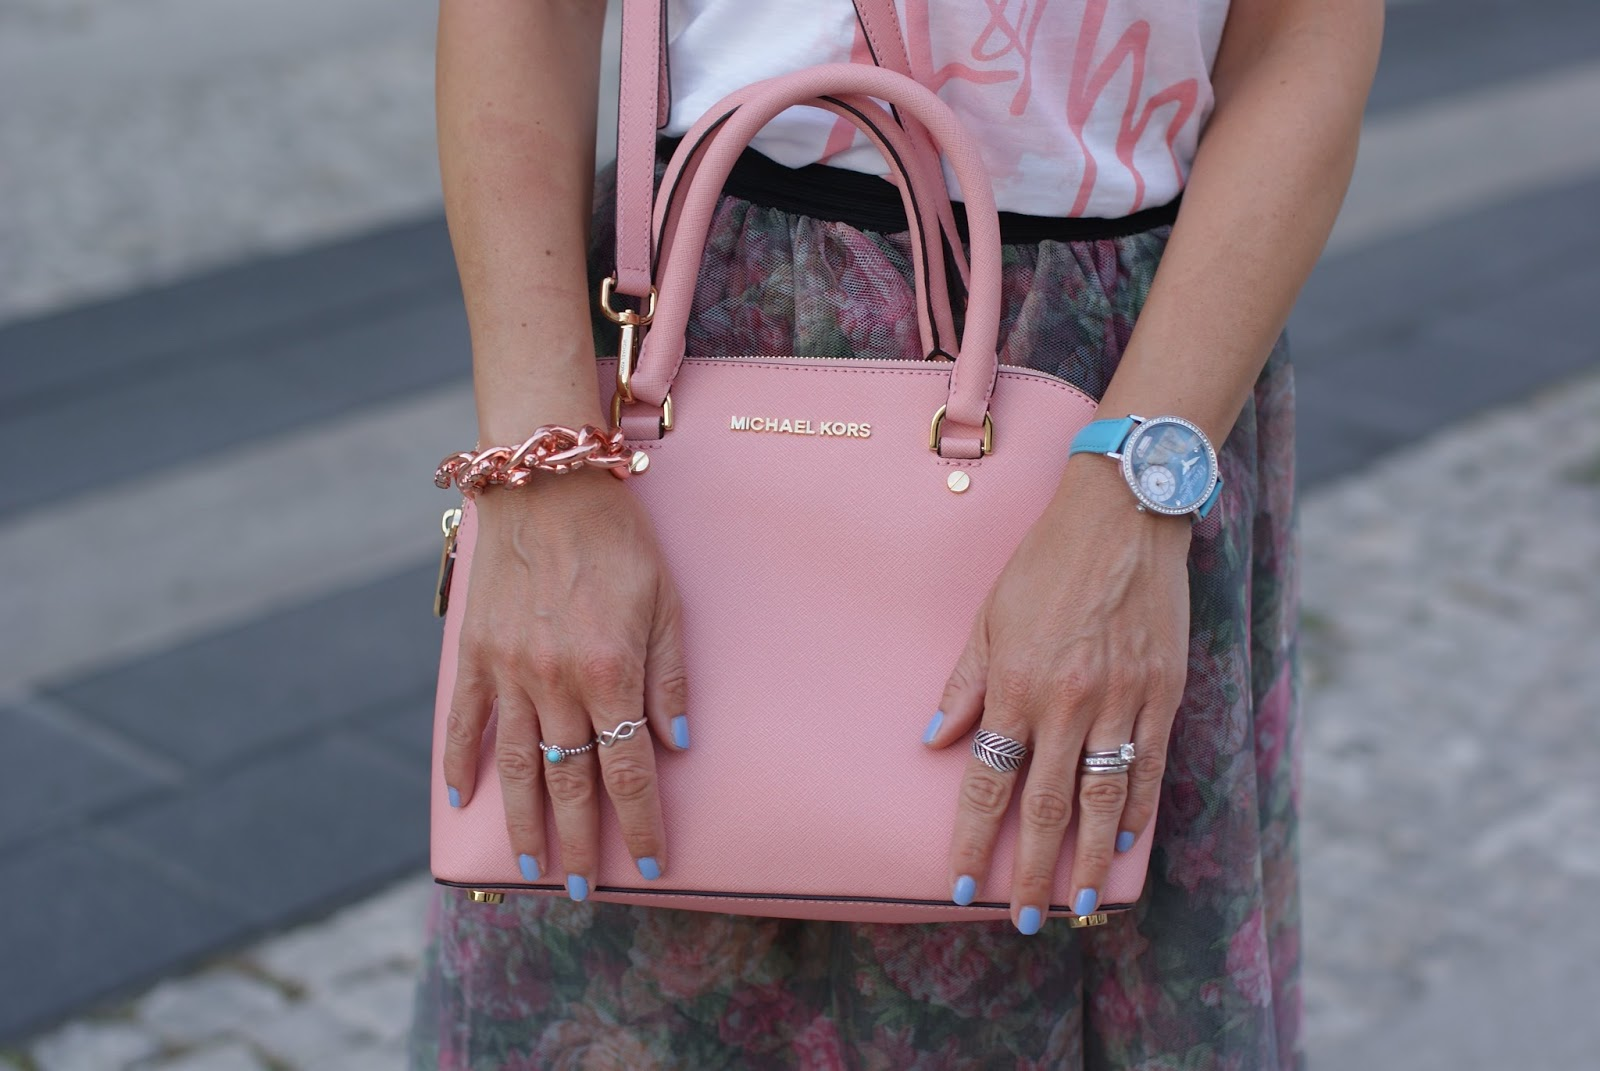 Michael Kors cindy pink bag and Luca Barra capri watch on Fashion and Cookies fashion blog